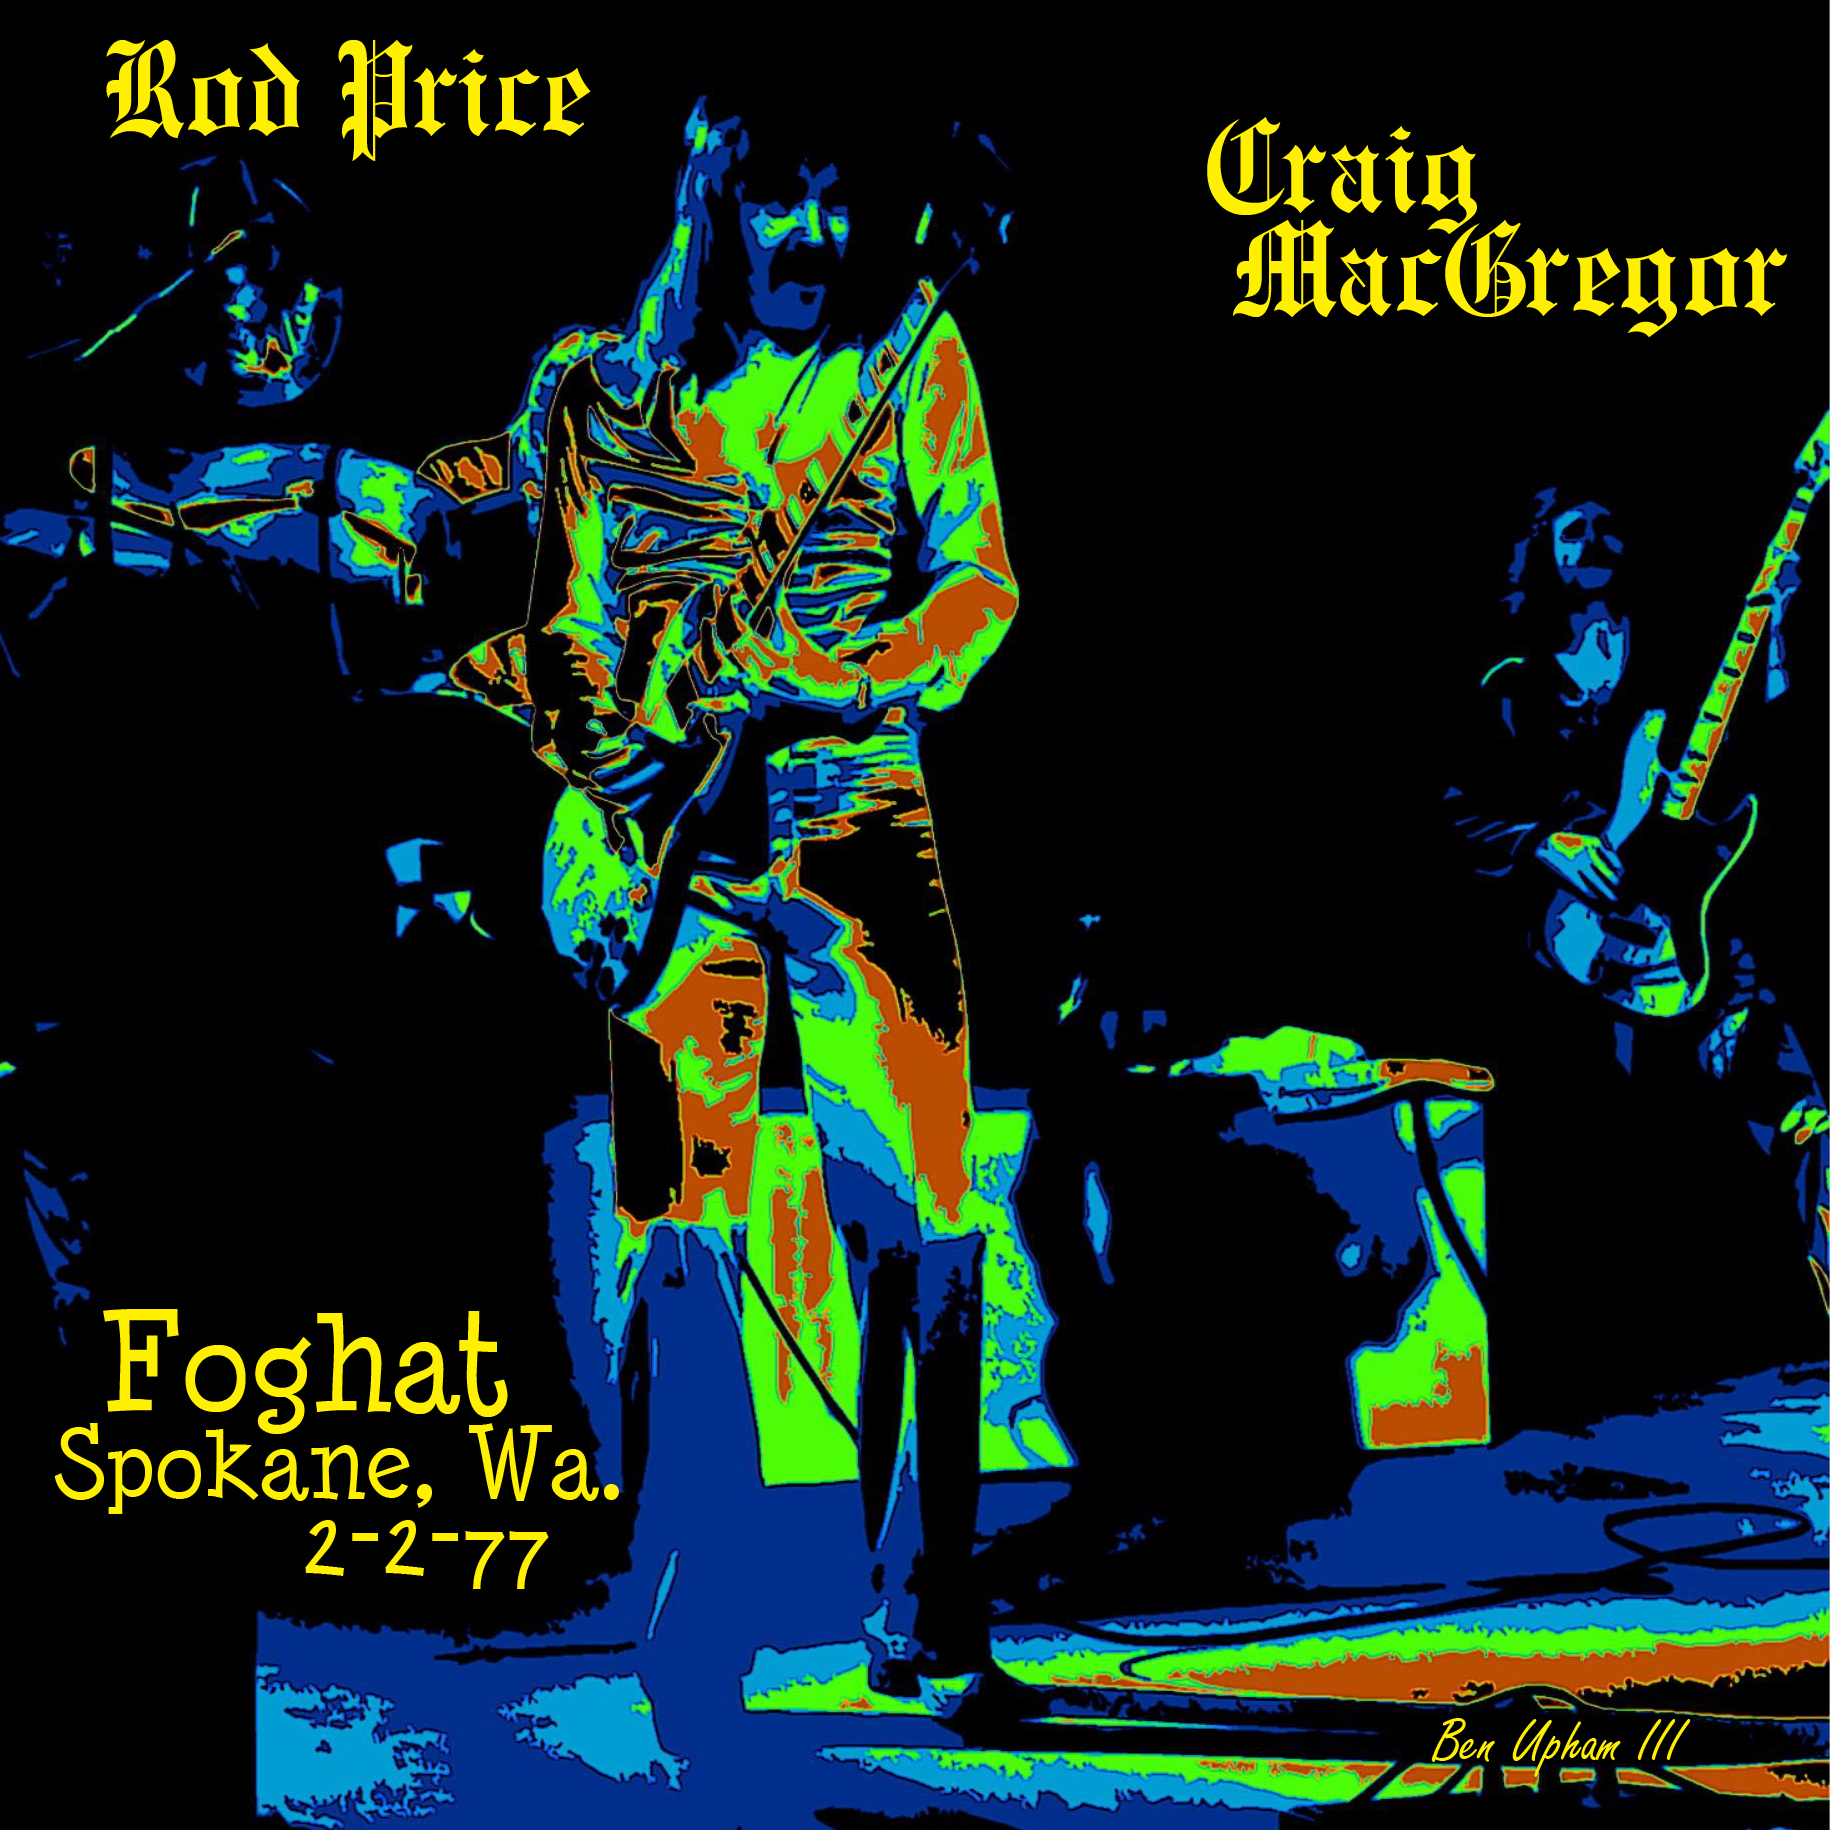 FOGHAT ROD PRICE ART 1SQT